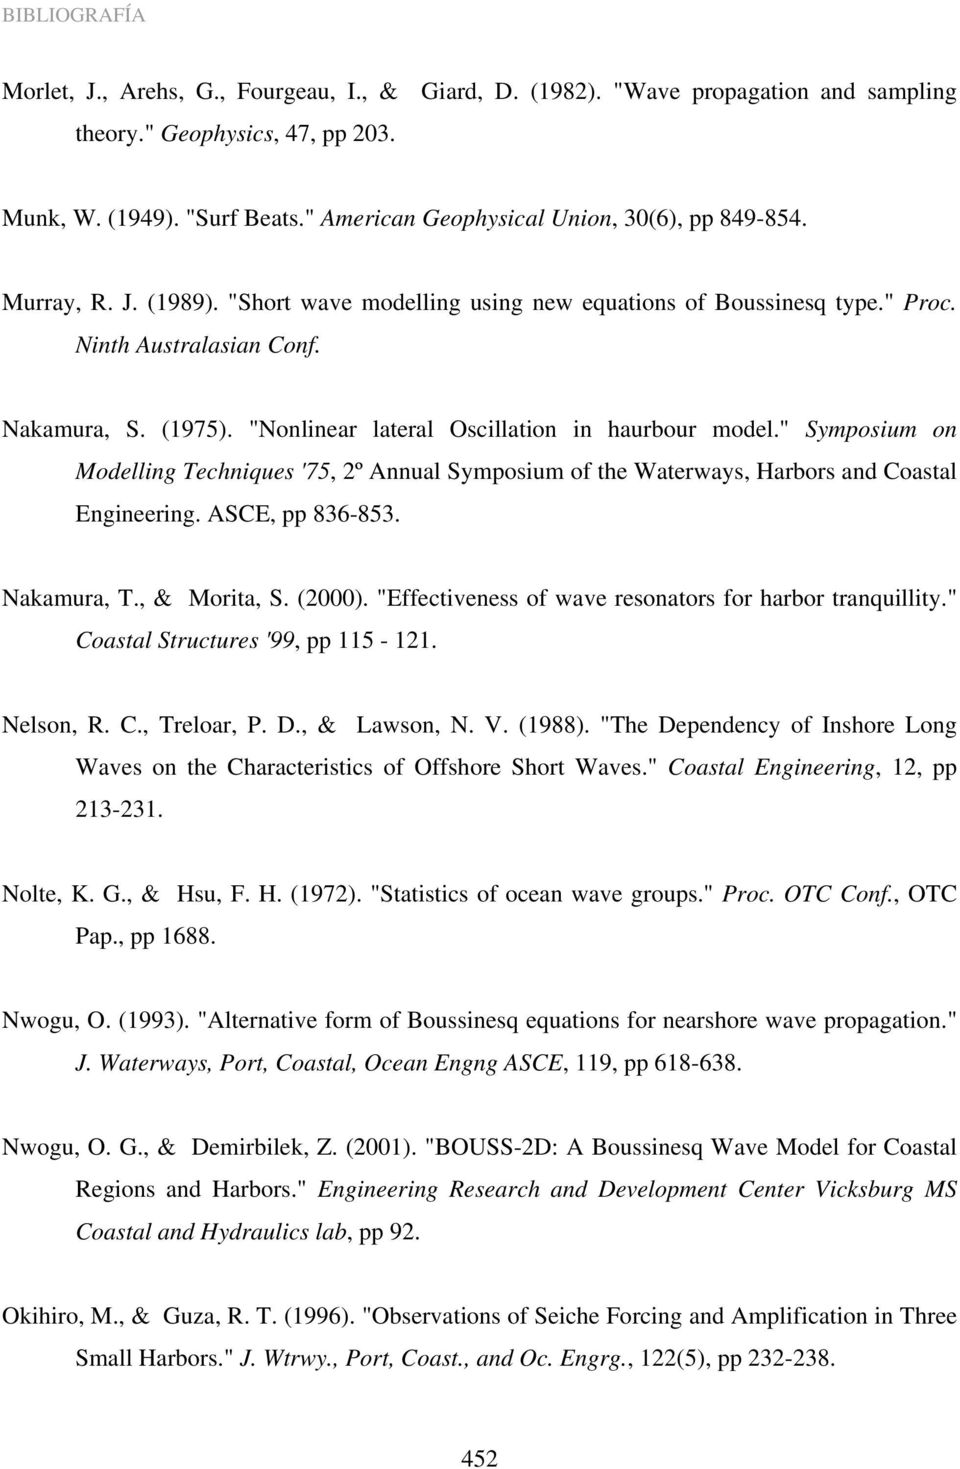 """ Symposium on Modelling Techniques '75, 2º Annual Symposium of the Waterways, Harbors and Coastal Engineering. ASCE, pp 836-853. Nakamura, T., & Morita, S. (2000)."